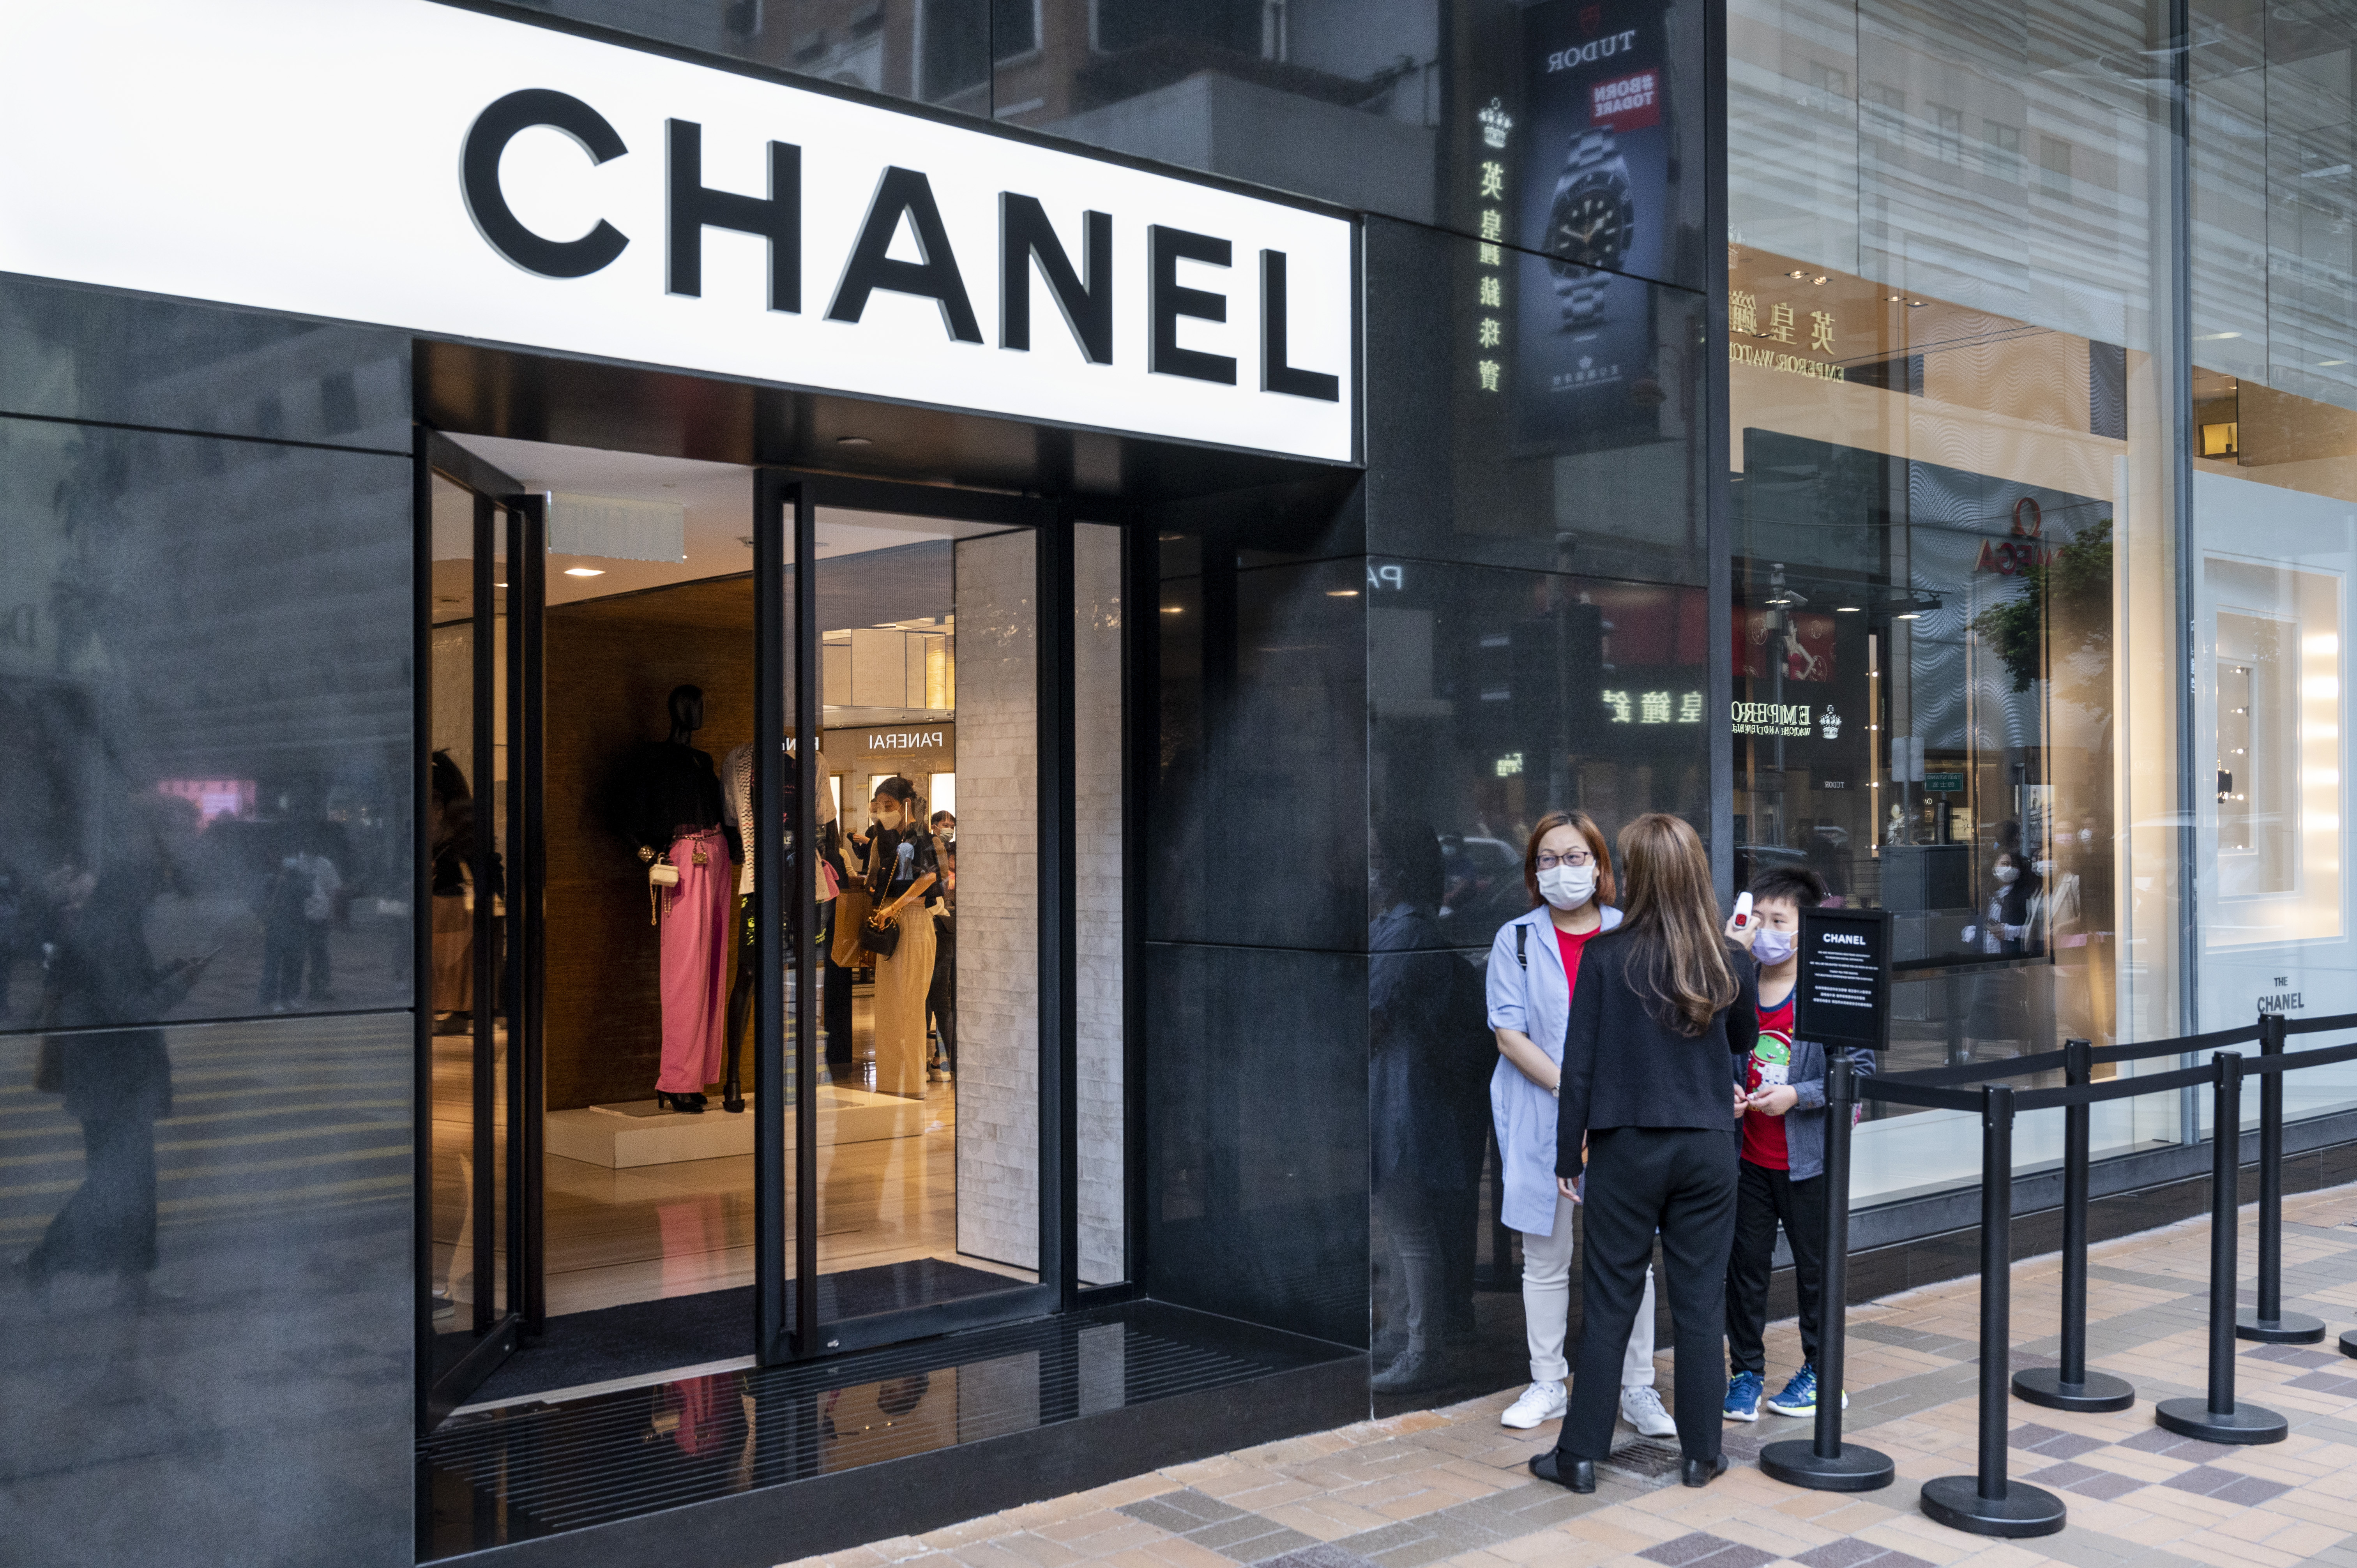 Shoppers in a queue at the entrance of the French multinational Chanel clothing and beauty products brand store seen in Hong Kong. (Photo by Budrul Chukrut / SOPA Images/Sipa USA)(Sipa via AP Images)